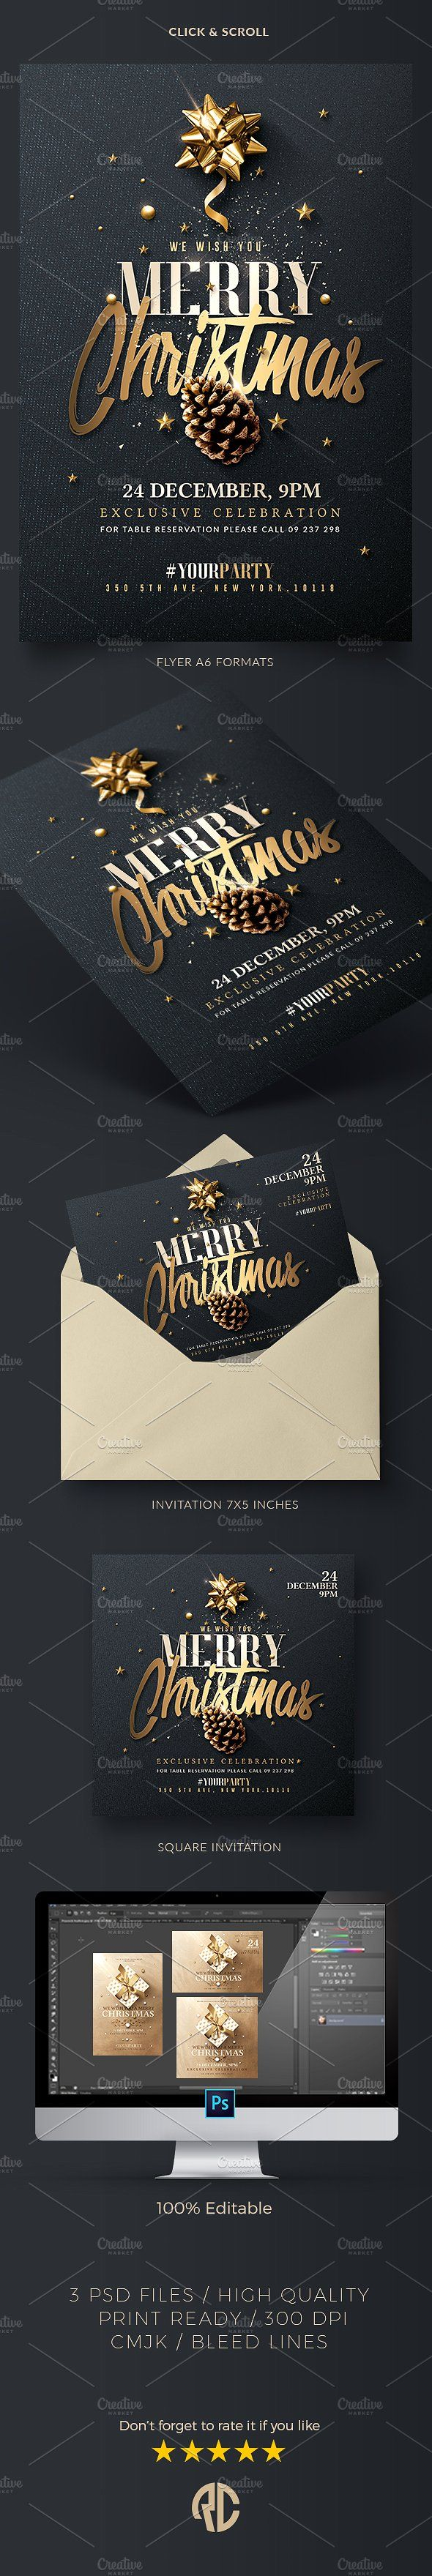 Christmas invitation psd package v3 graphic design layout christmas invitation psd package creative package perfect to promote your classy christmas stopboris Images